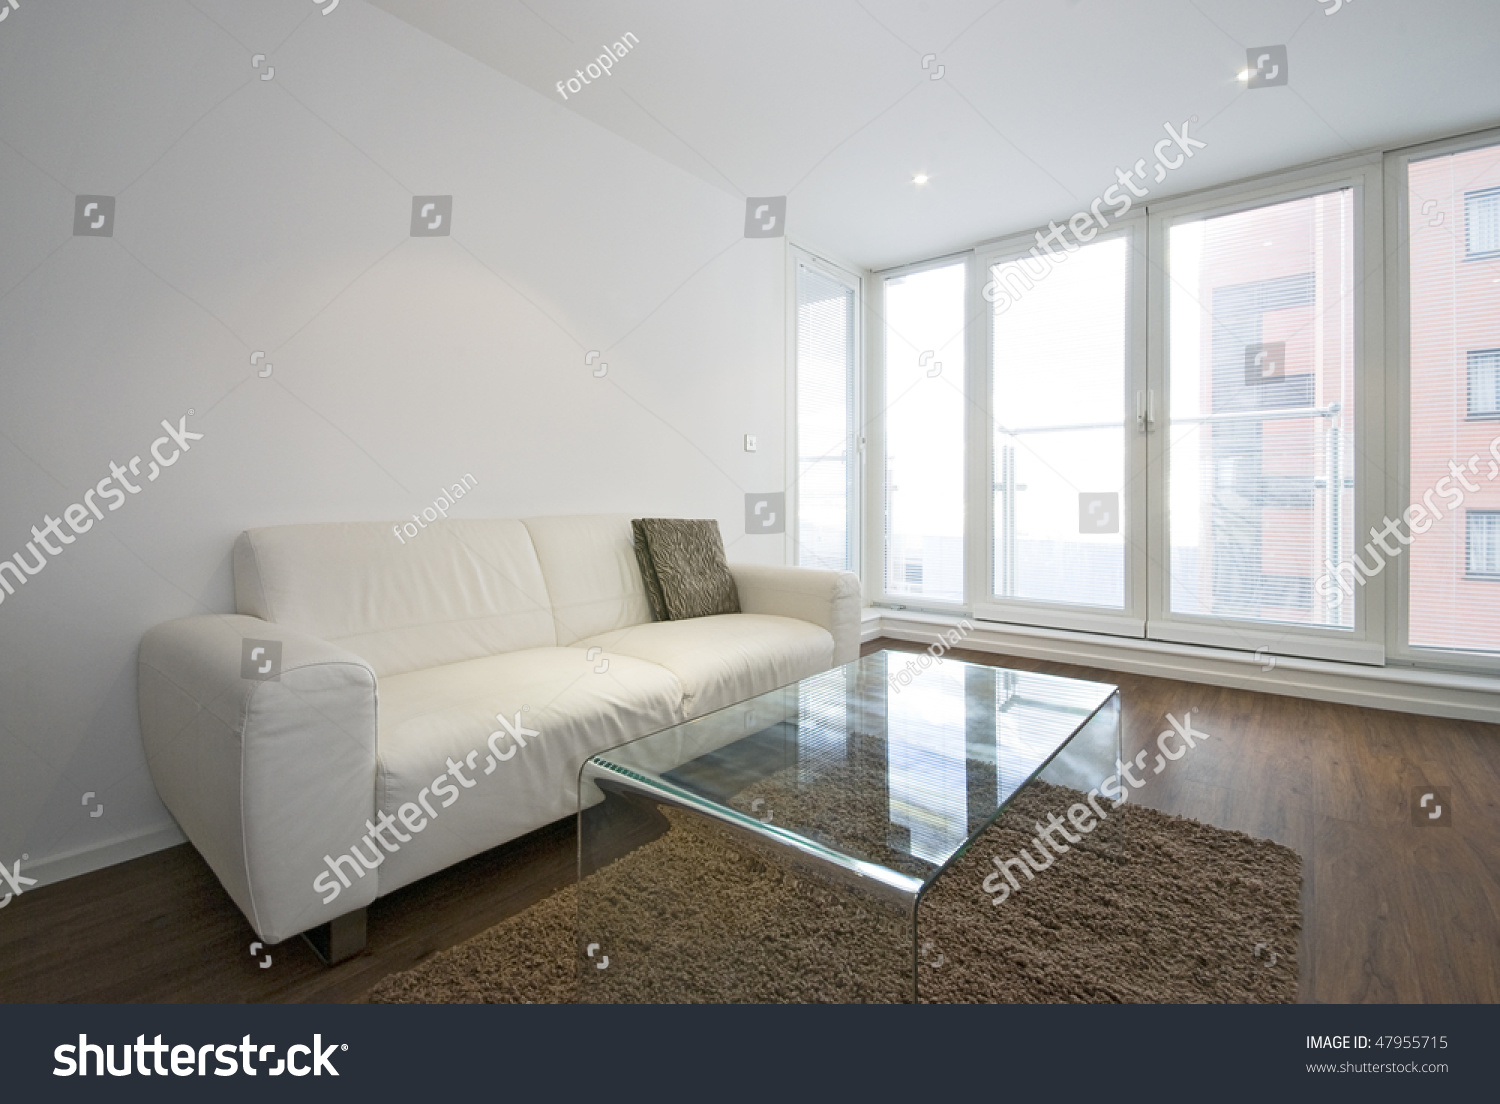 Two Seater Sofa Living Room Modern Living Room With White Leather Two Seater Sofa And Glass